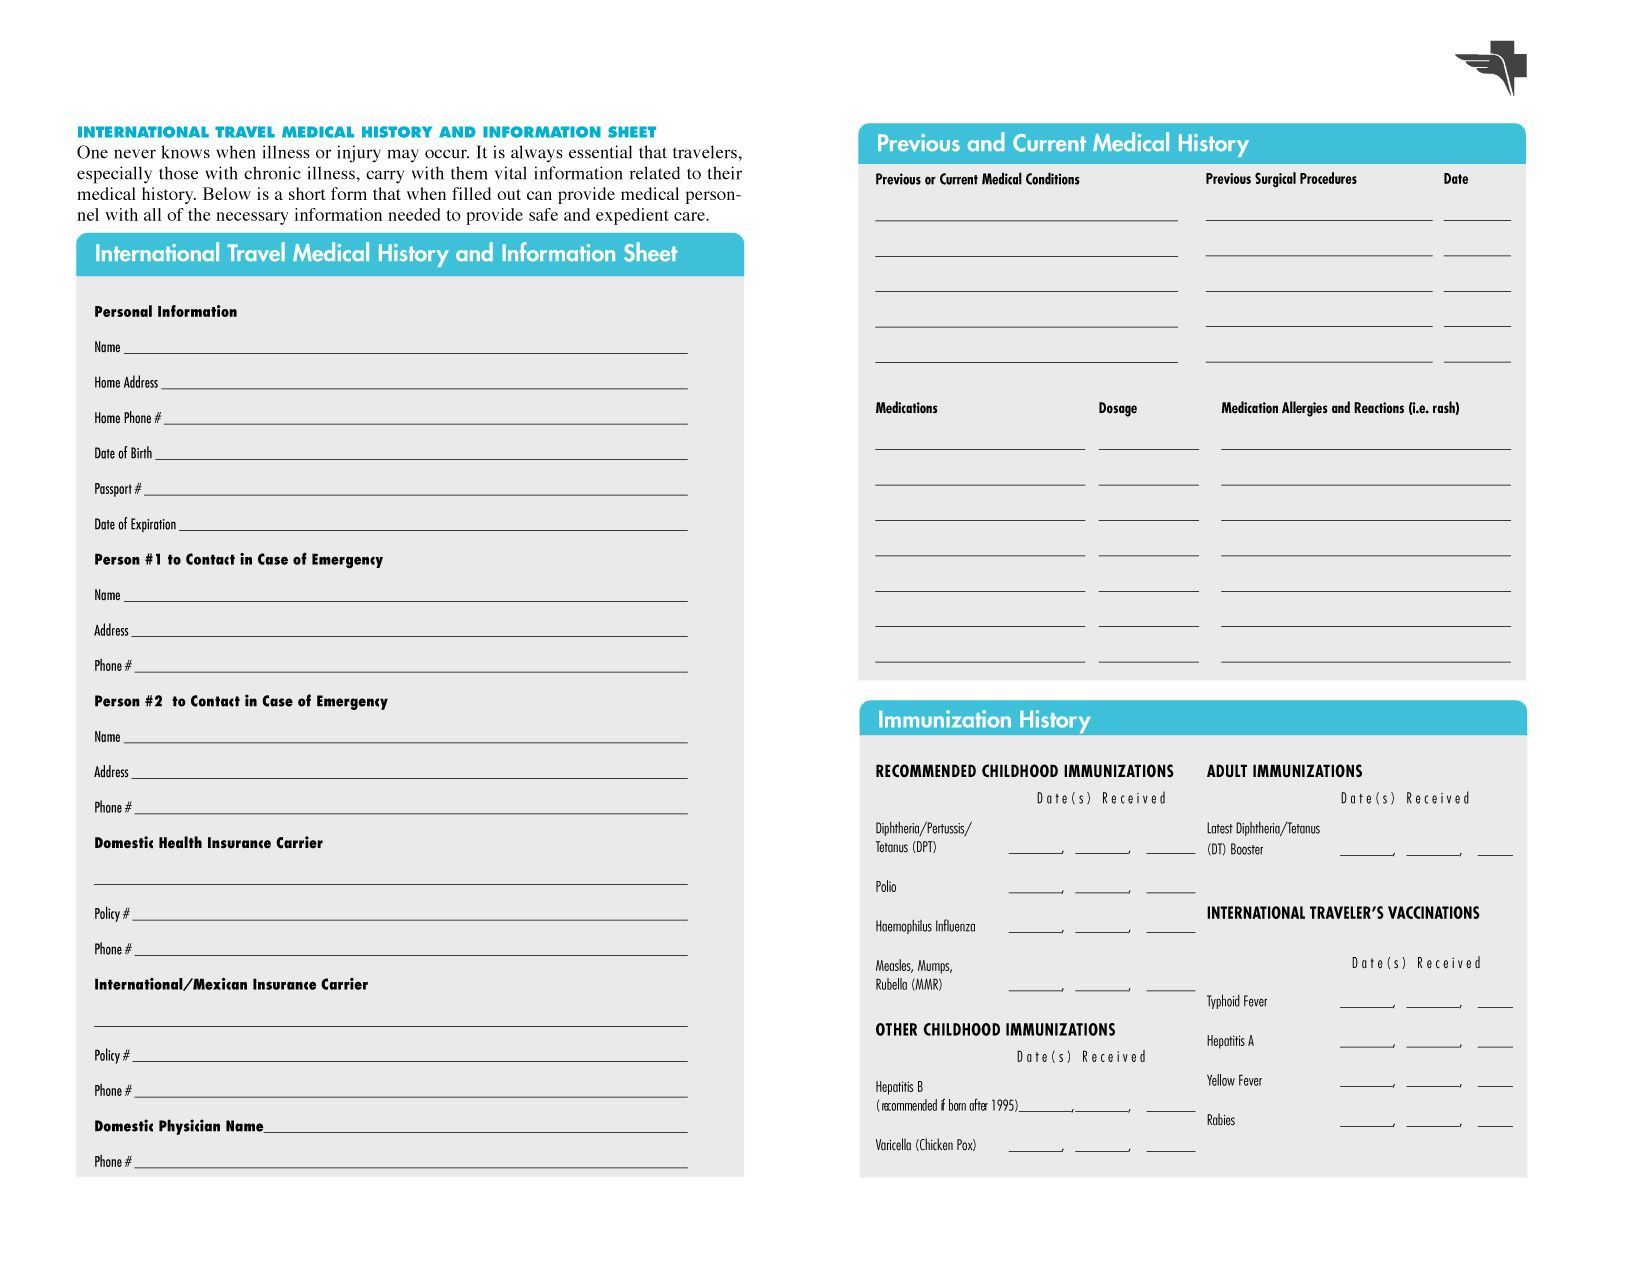 004 Fantastic Family Medical History Template Free Image  QuestionnaireFull